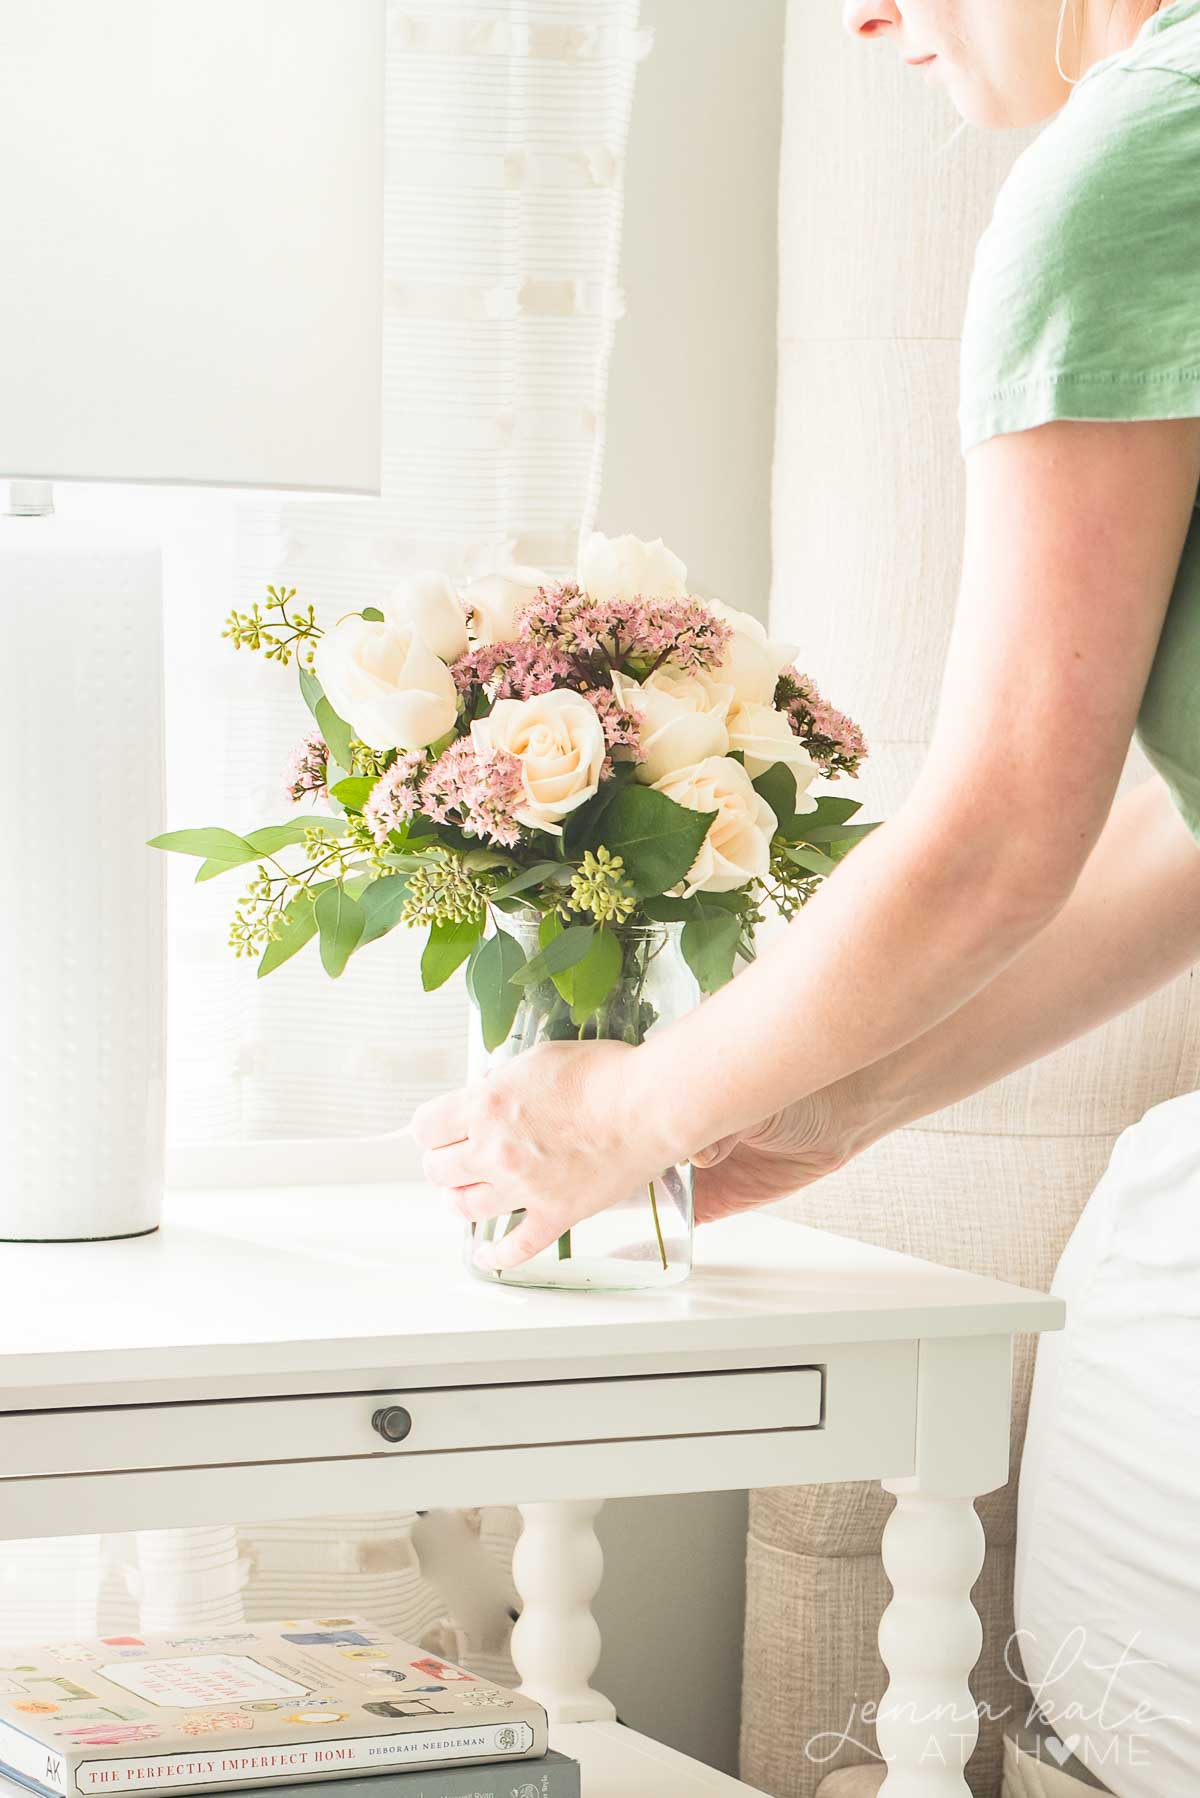 a fresh bouquet of flowers in the bedroom is a simple fall decorating idea that's minimalistic yet seasonally appropriate